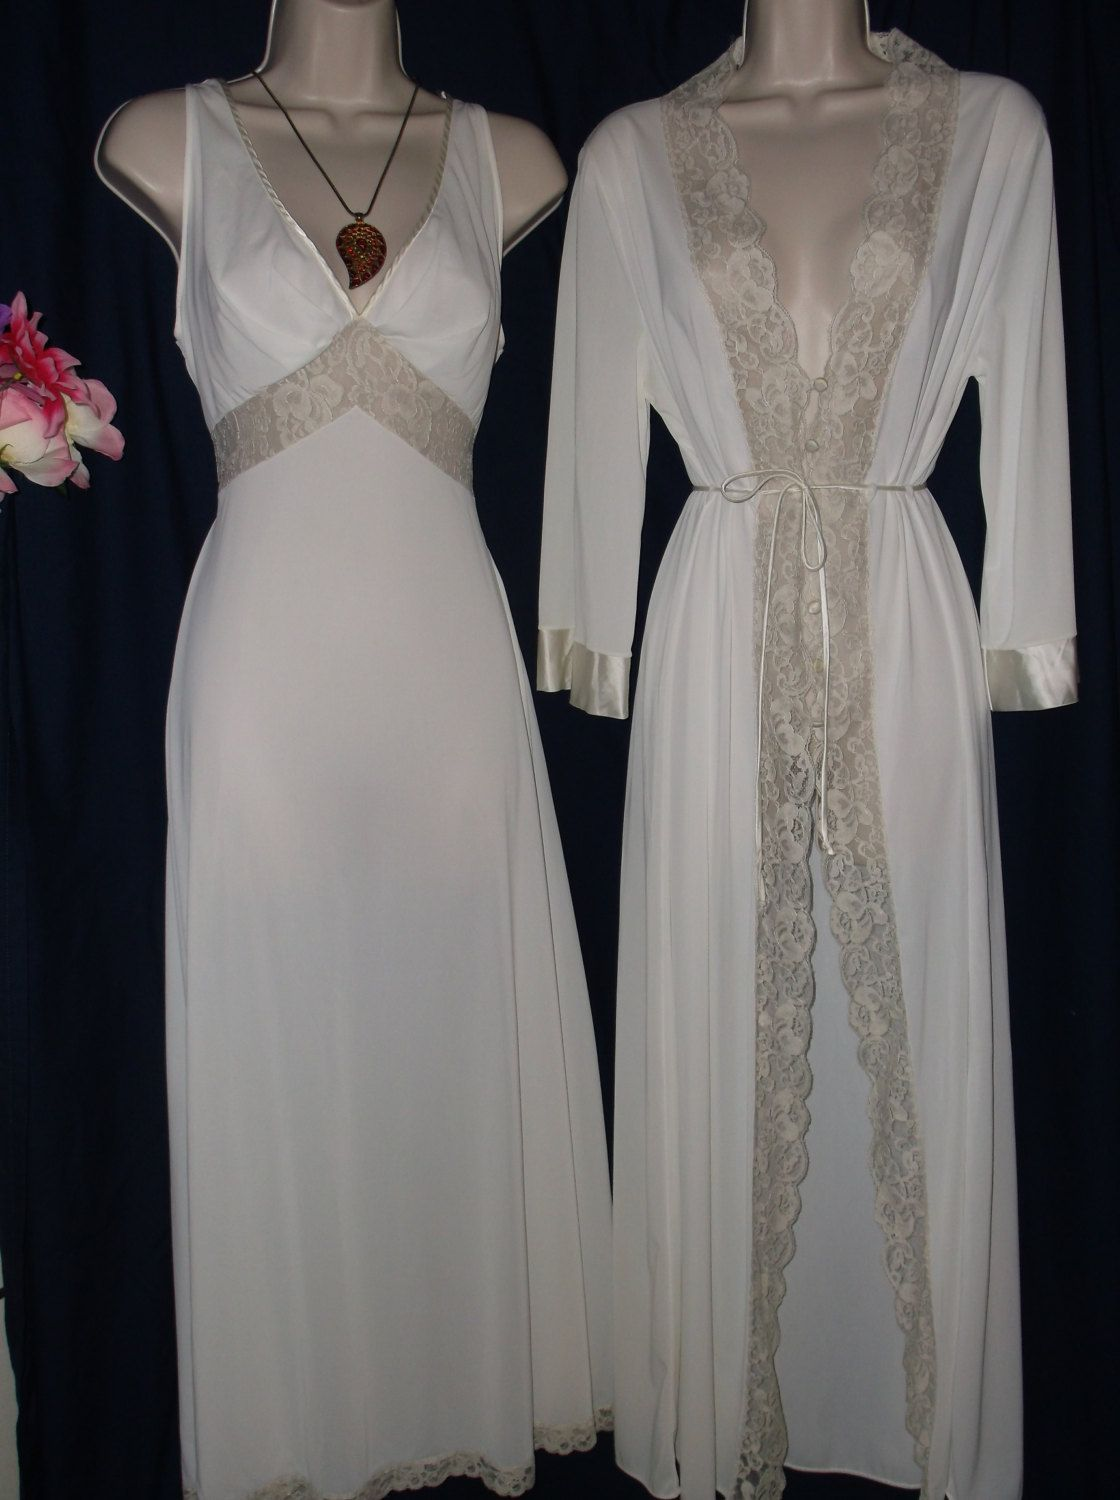 Vintage 1960s bridal peignoir set by Sears  2-piece nightgown and robe dressing  gown  36 Medium  white ivory  beige lace trim  old Hollywood 5f53a4578